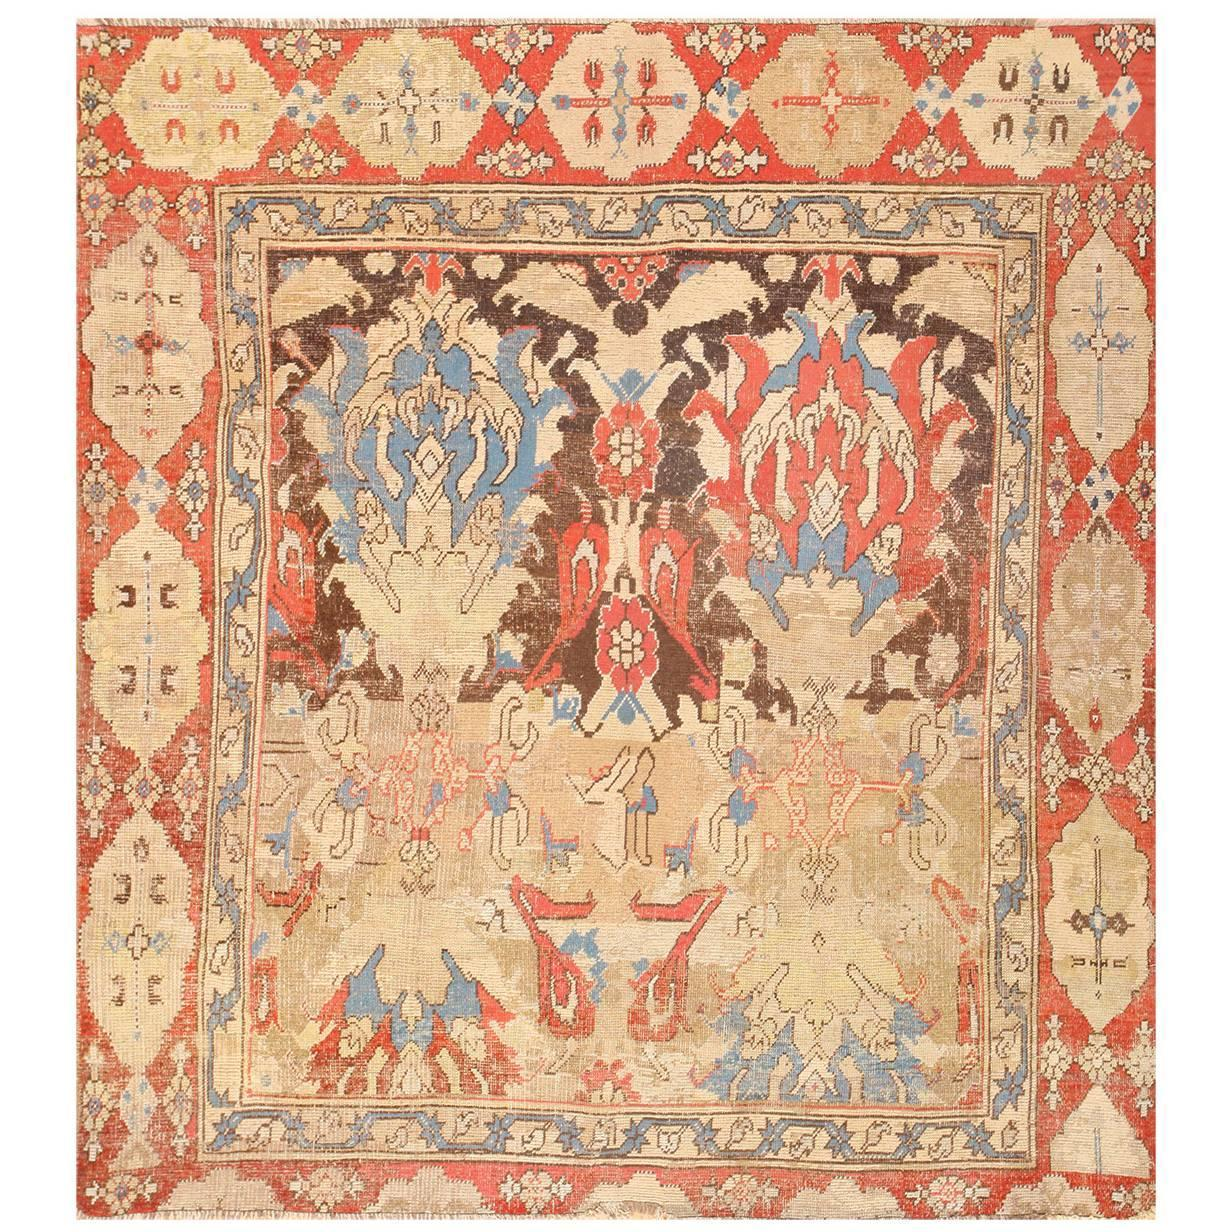 milas rug bosphorusrugs antique products rugs area turkish bosphorus